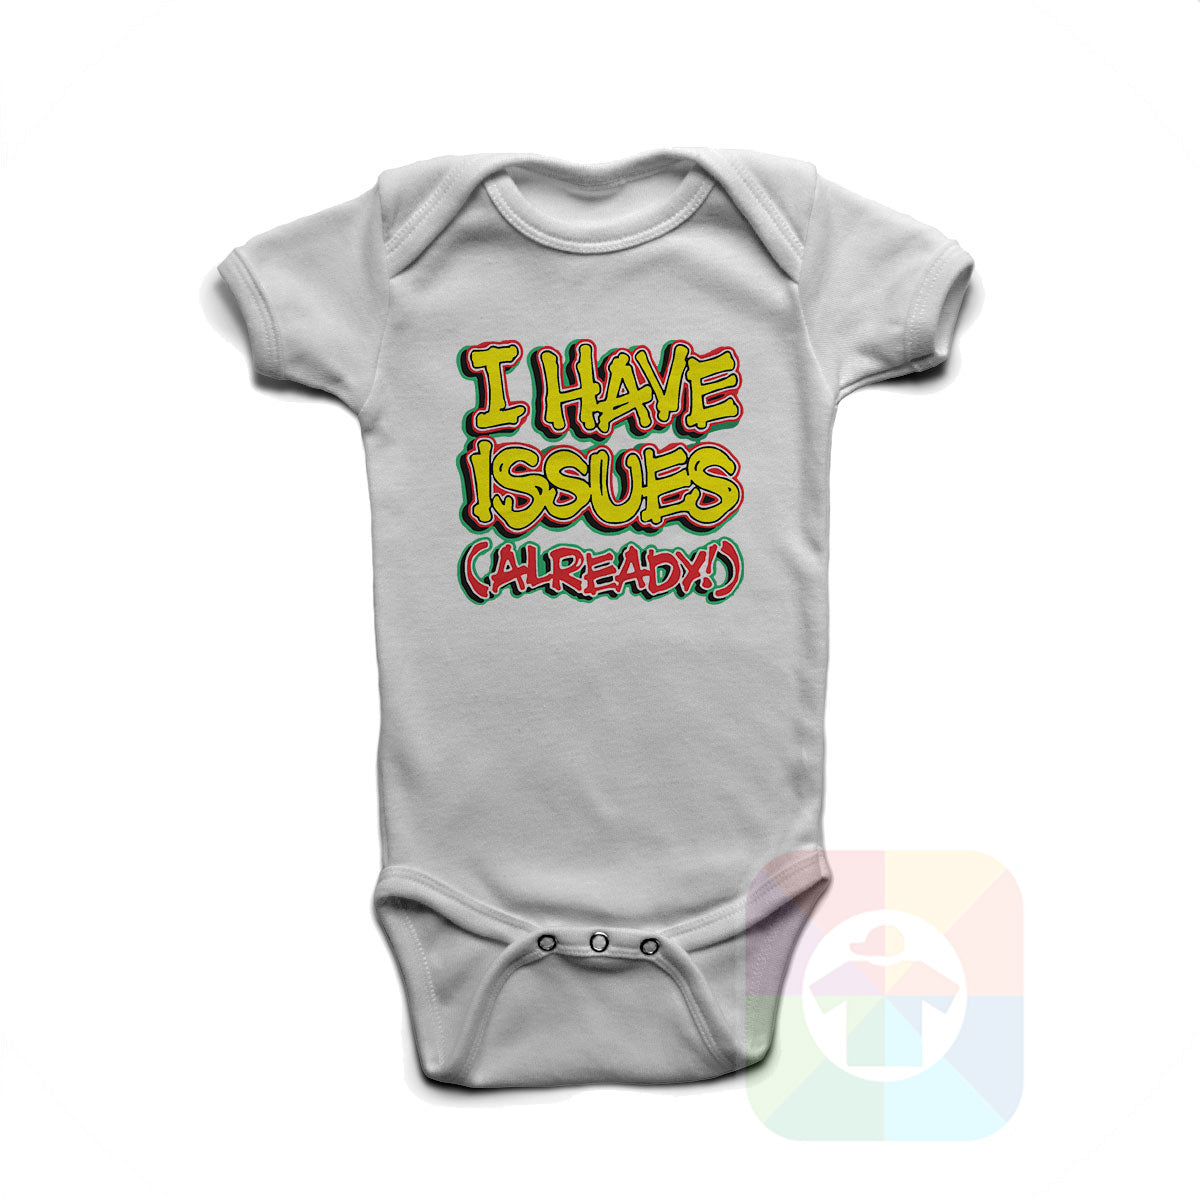 A WHITE Baby Onesie with the  ' Baby onesie 'I HAVE ISSUES ALREADY' kids funny novelty design. #8167 / New Born, 6m, 12m, 24m Sizes ' design.